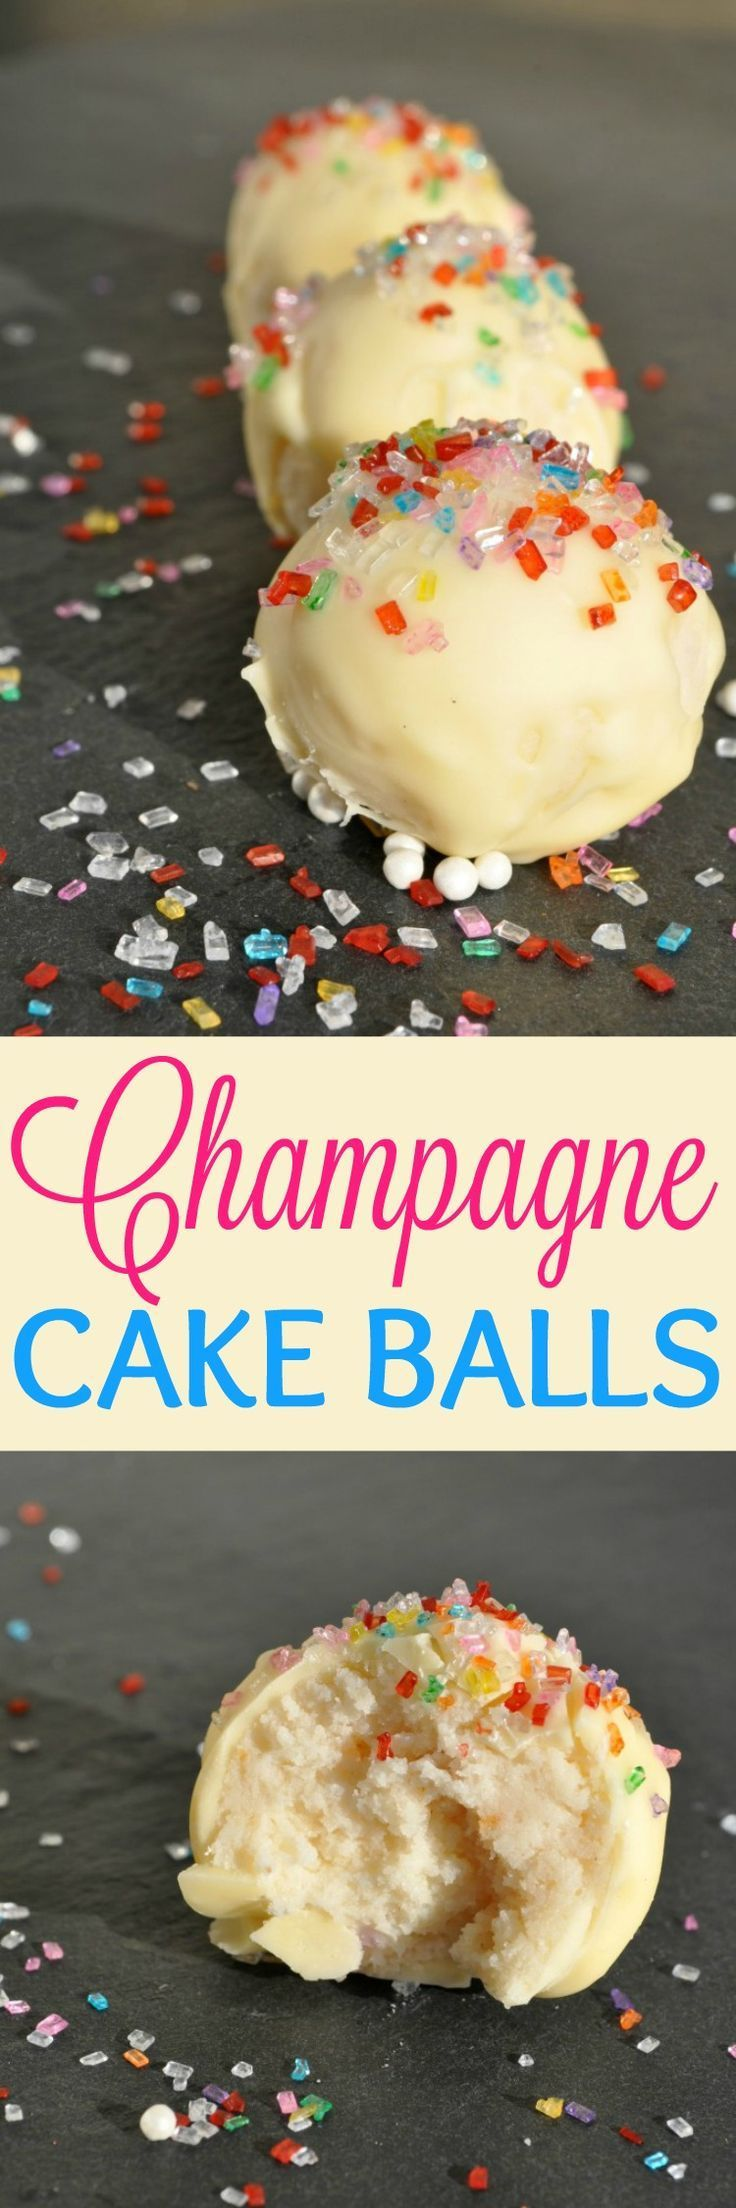 Champagne Cake Balls are the perfect easy dessert to add to your bridal shower, wedding, or other party menu!!!